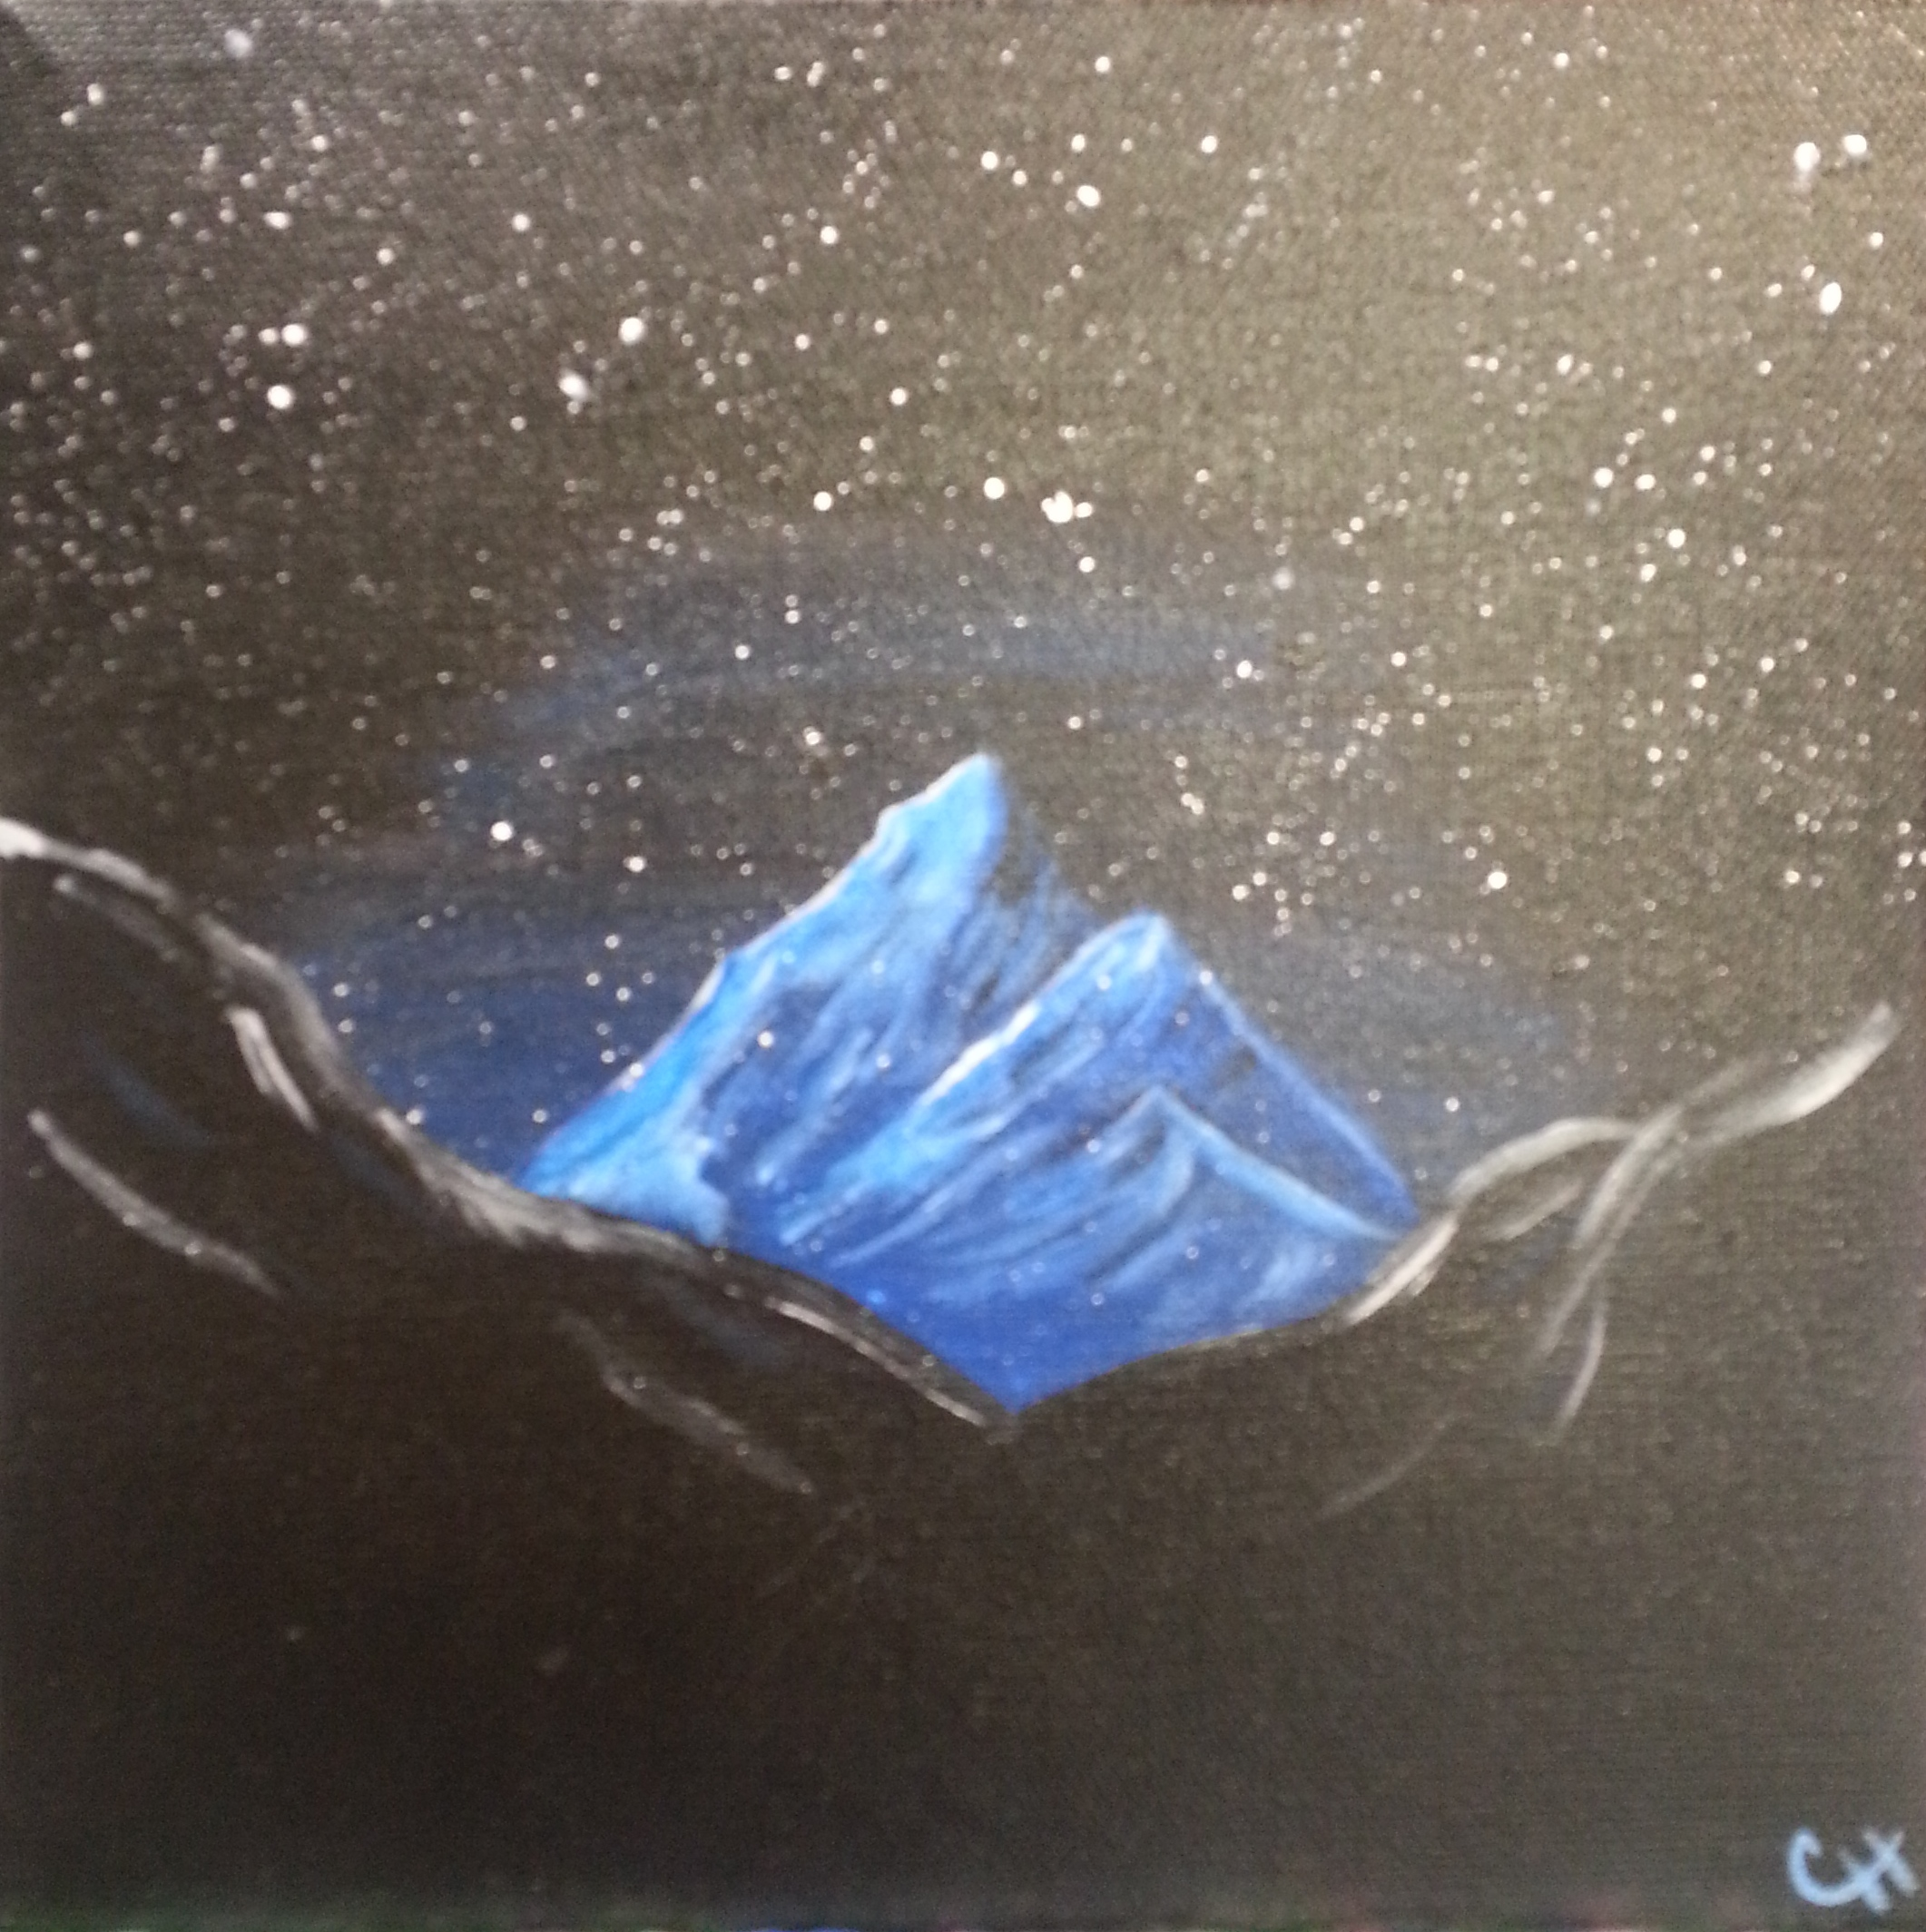 Starry Mountain